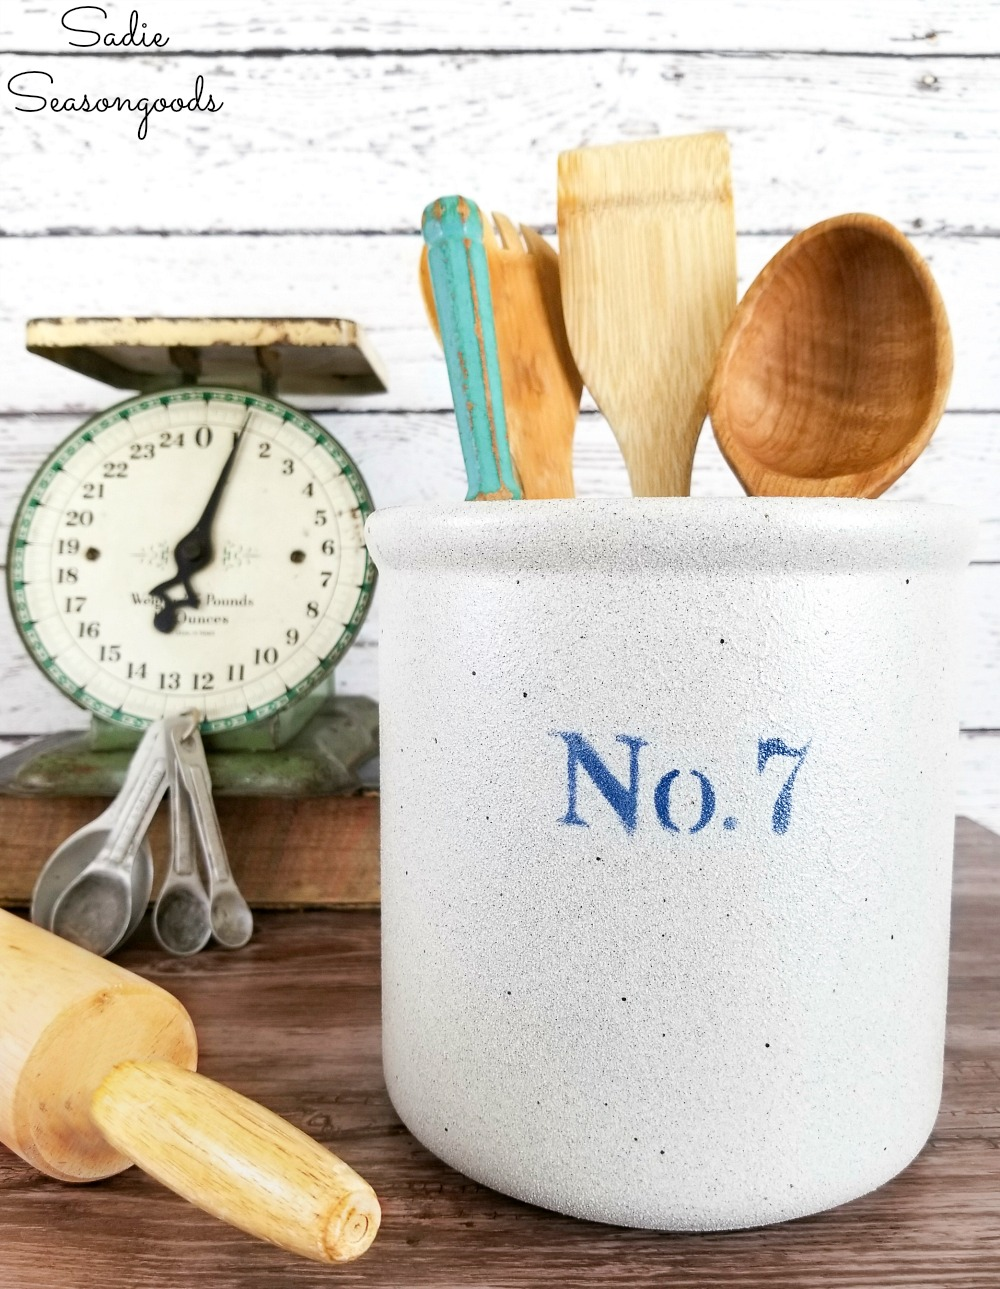 Upcycling a white ceramic canister to look like the antique crocks